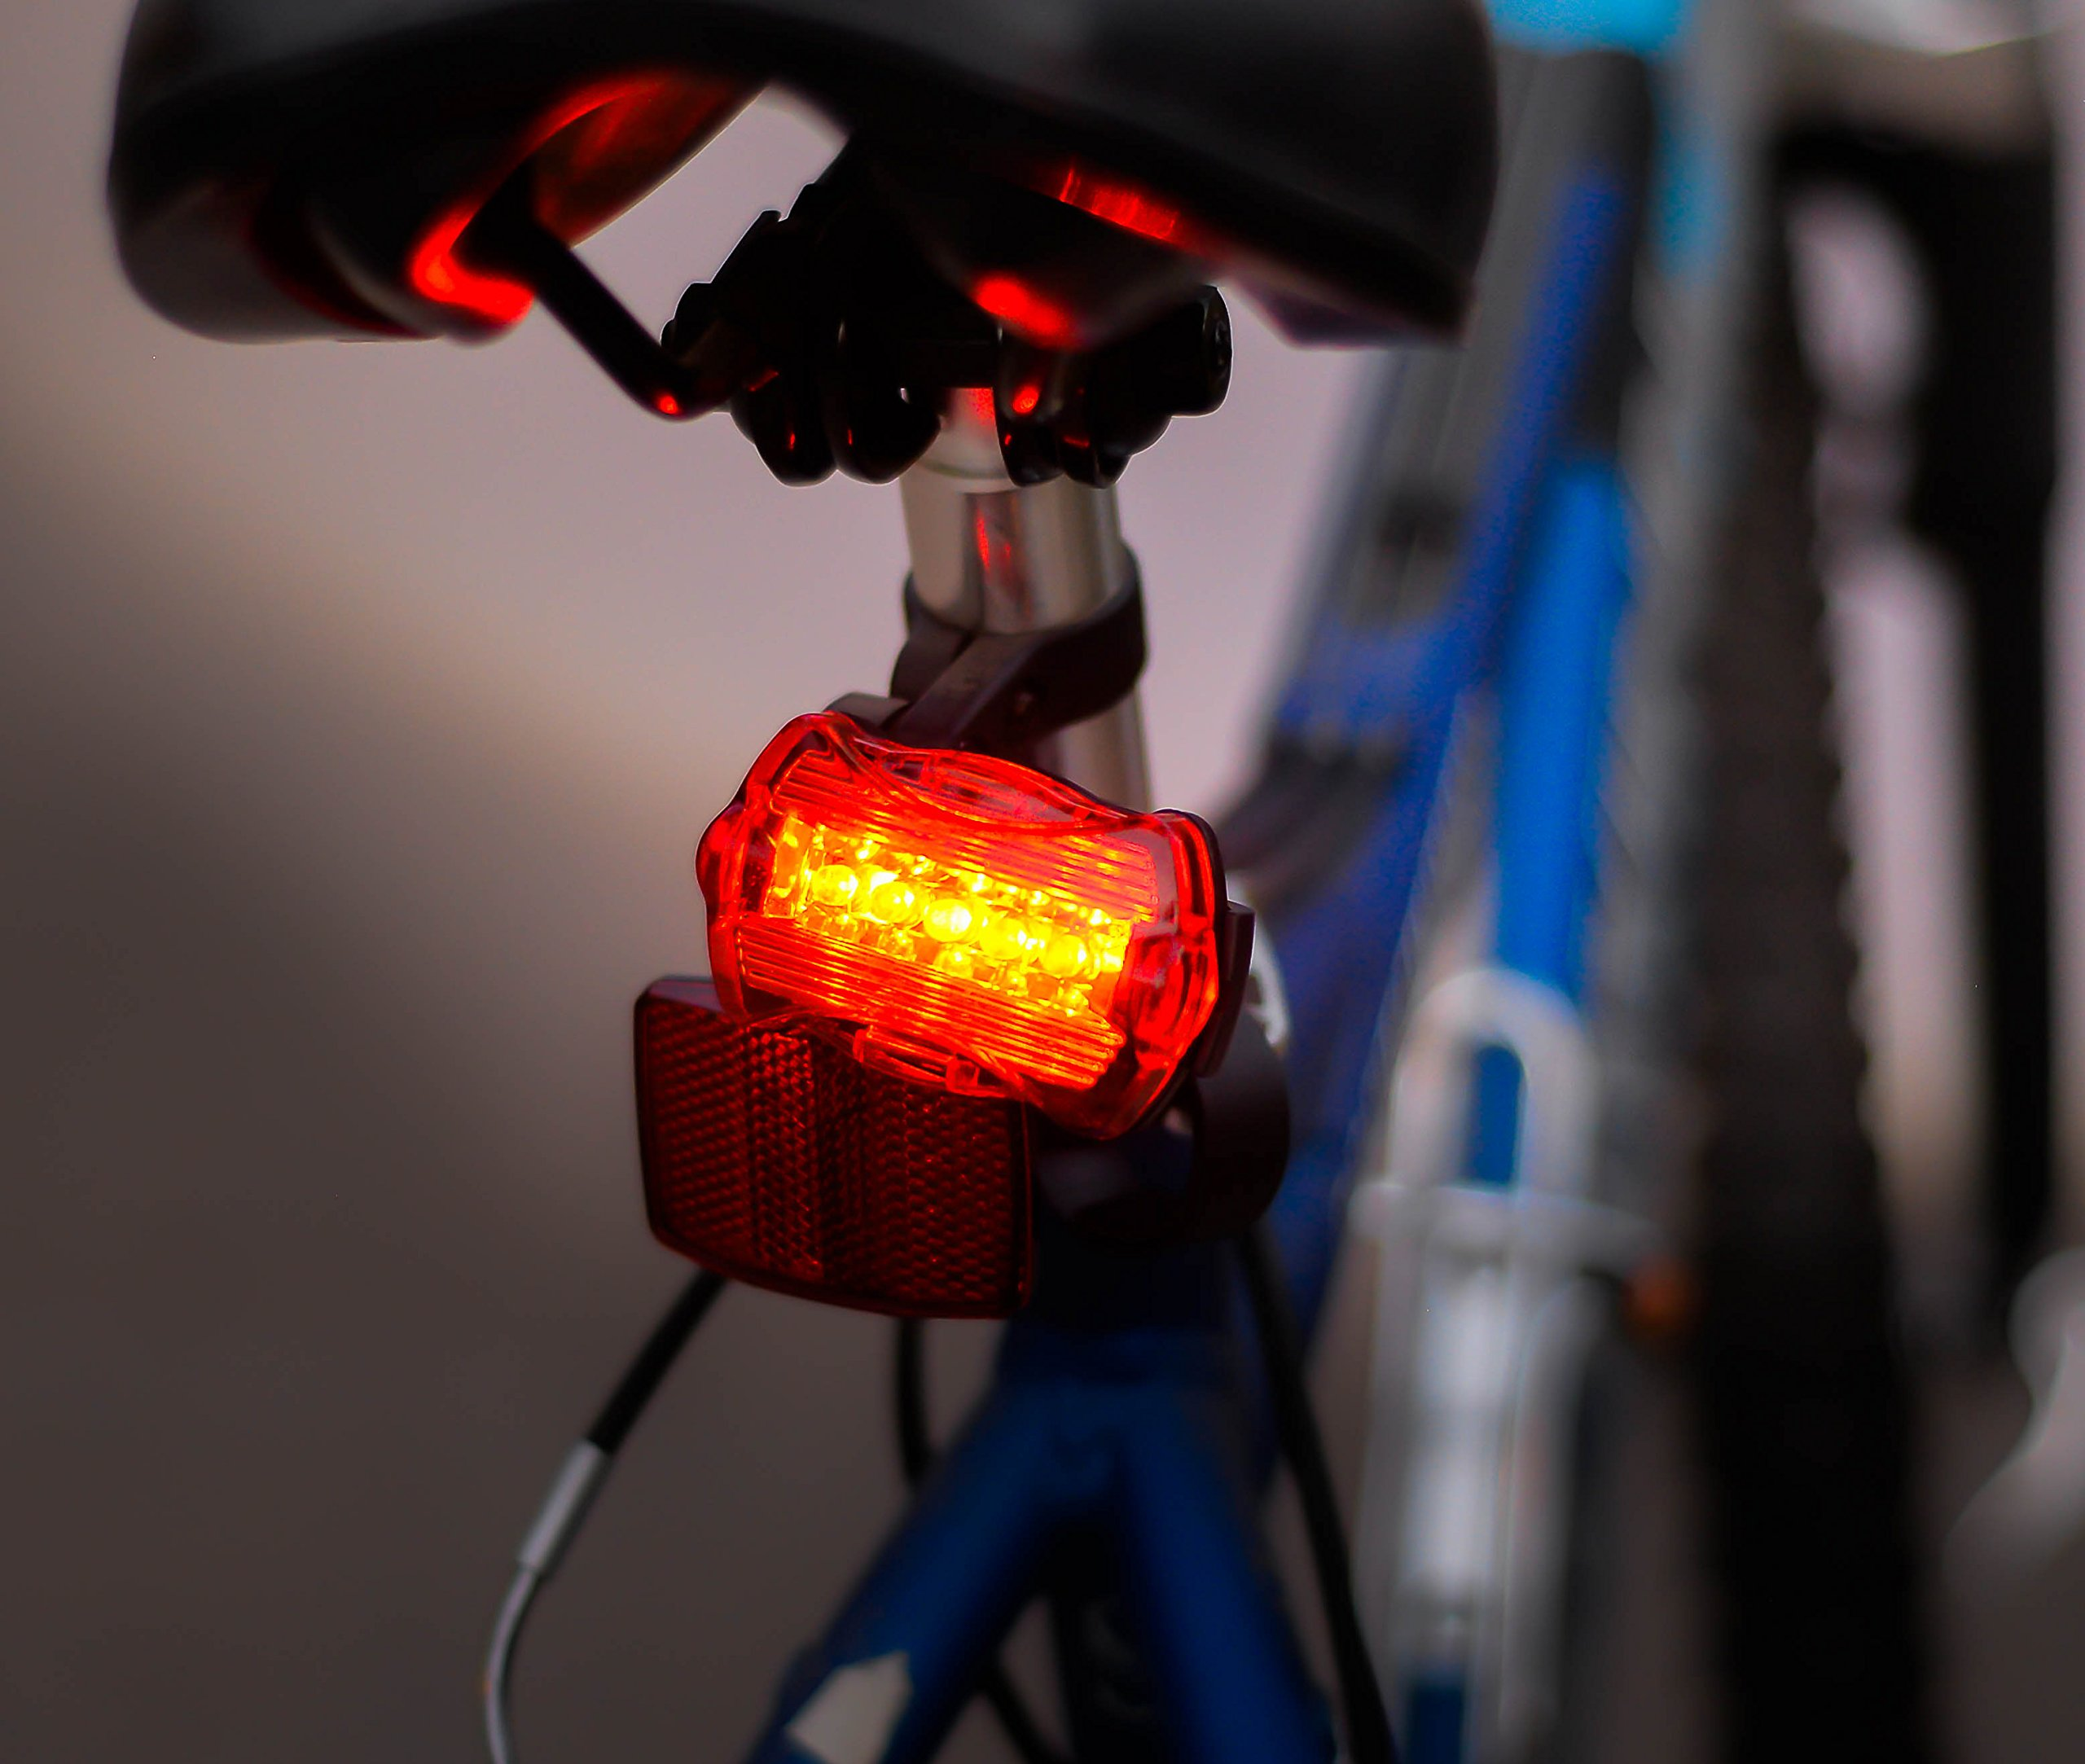 tru*Lite Bike Light Set-Super Bright 10W Removable Military Grade Tactical Flash Light-5 modes-1000+ Lumens-Zoom-5 LED Tail Light-7 modes-Water Resistant-Easy to Install-Life Time Warranty by tru*Lite (Image #4)